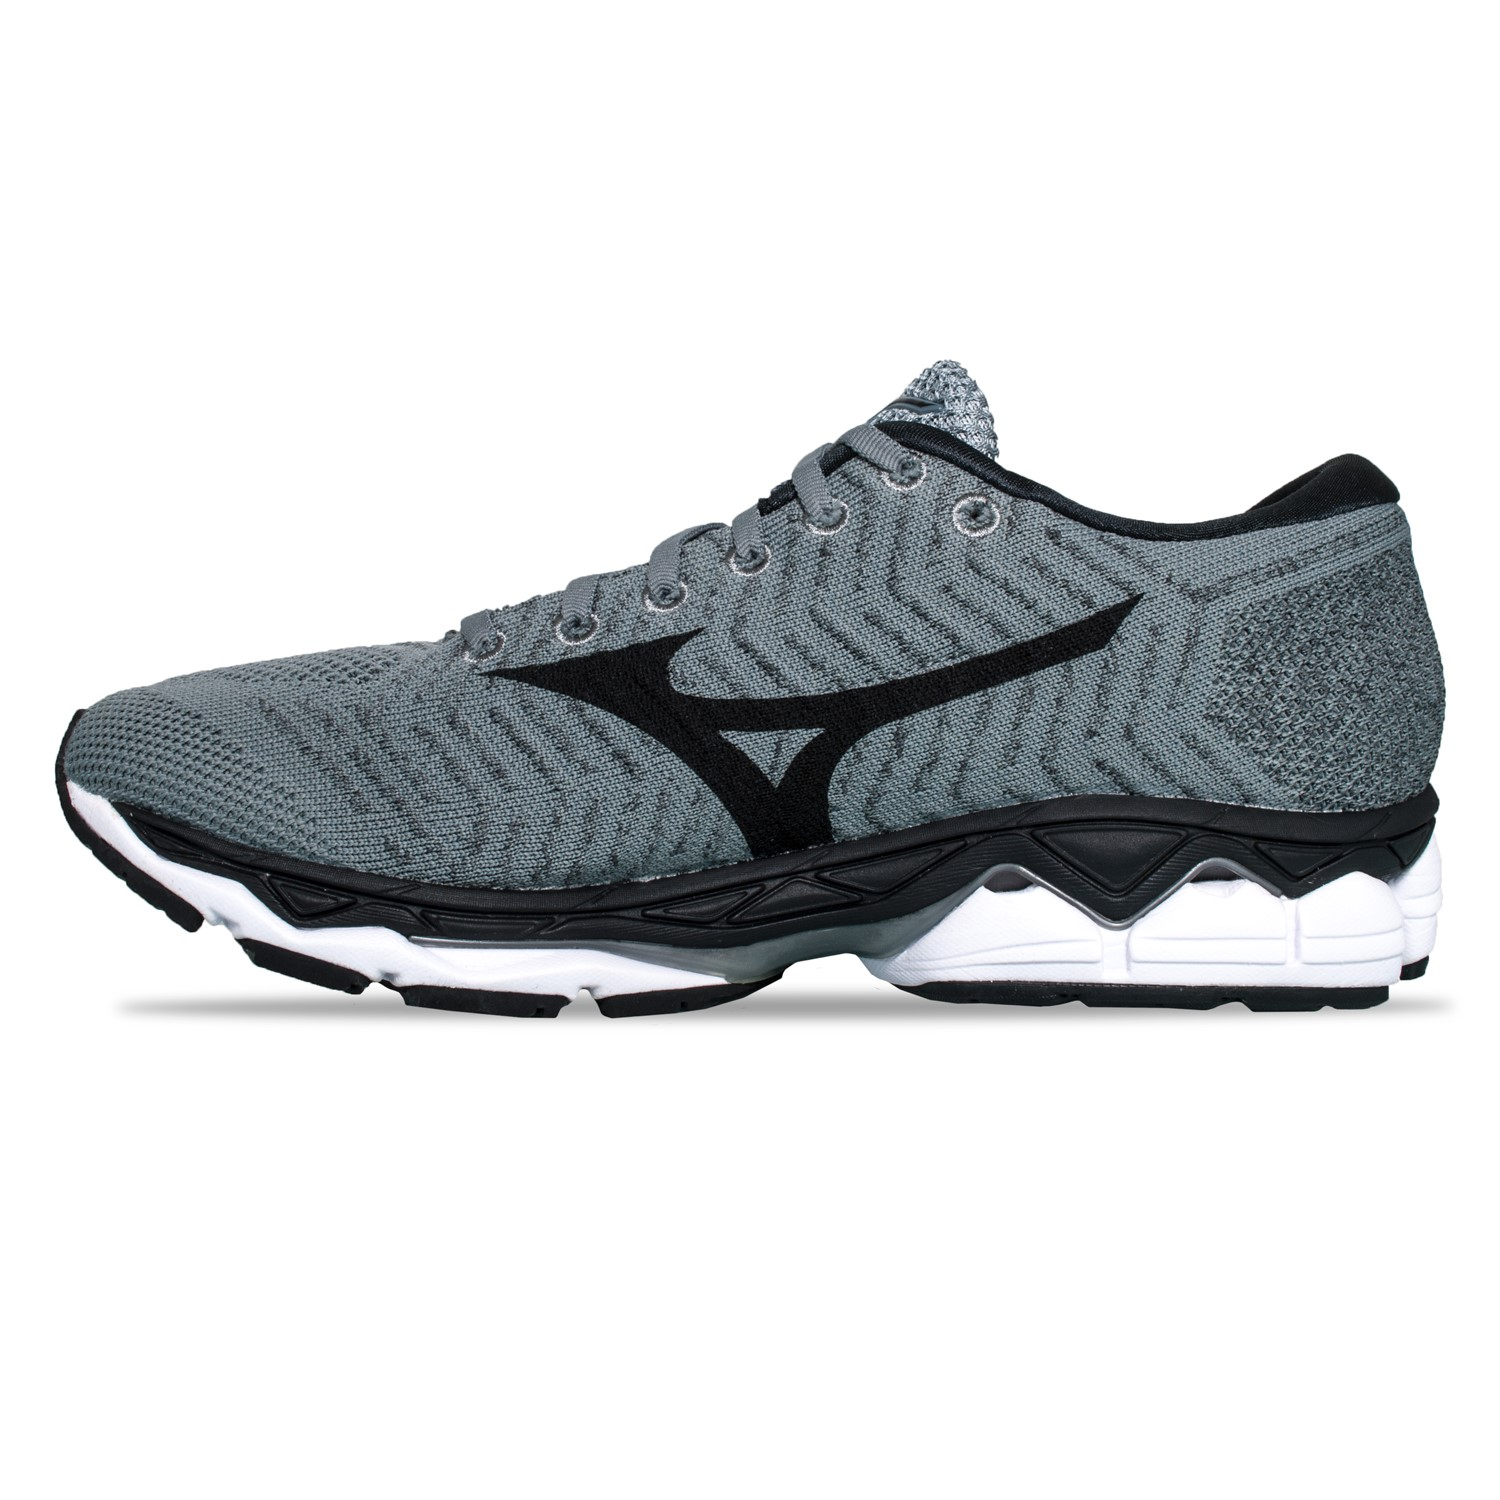 Mizuno Mens Wave Sky Waveknit 3 Running Shoes Trainers Sneakers Black Grey